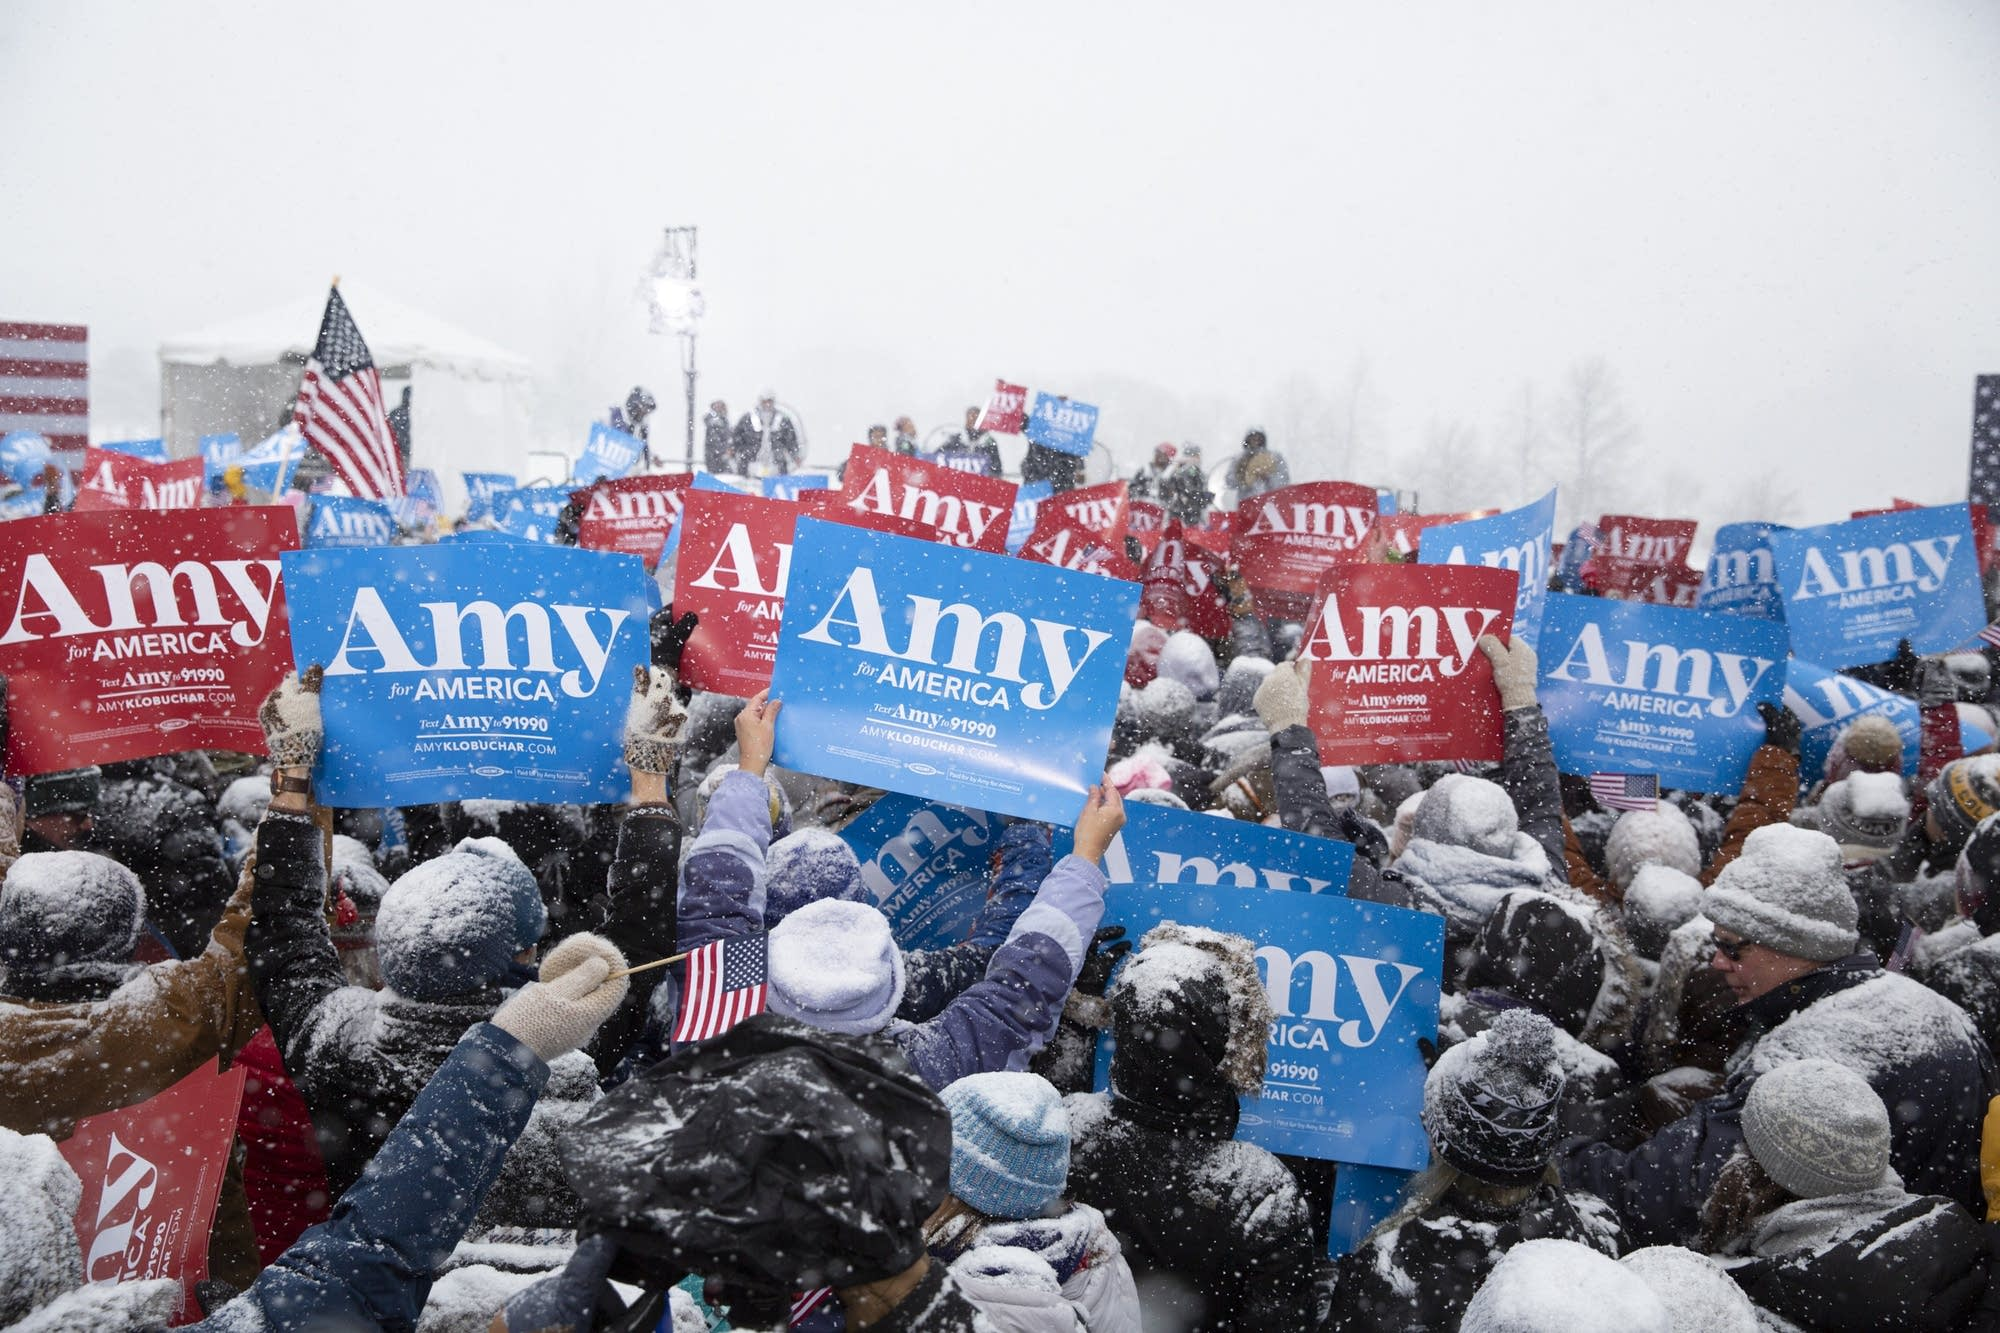 A large crowd gathers at a rally to hear U.S. Sen. Amy Klobuchar.